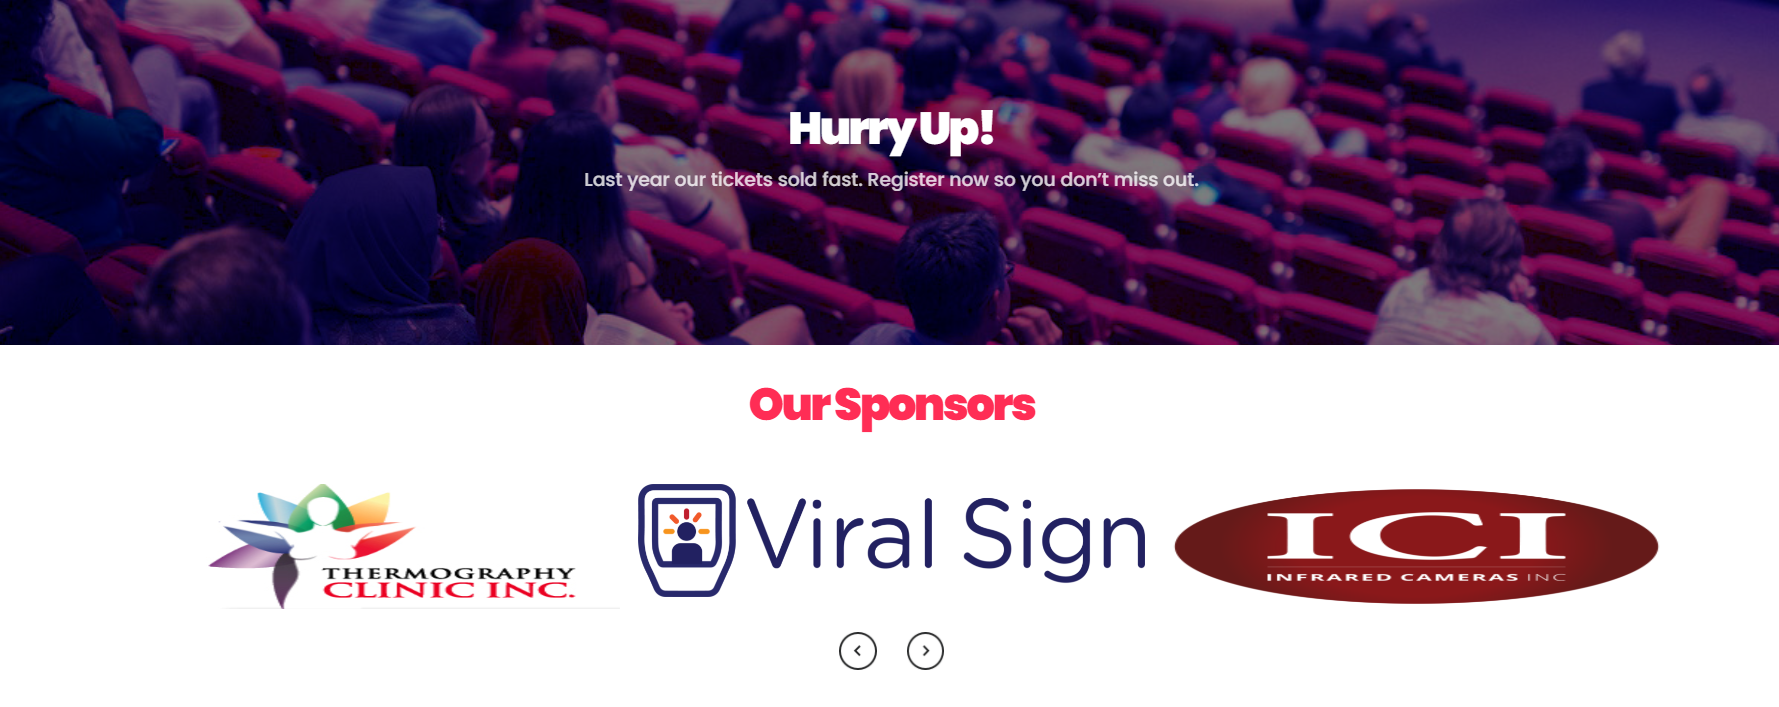 Viral Sign is proud to sponsor the Annual Meeting of the American Academy of Thermology (AAT)